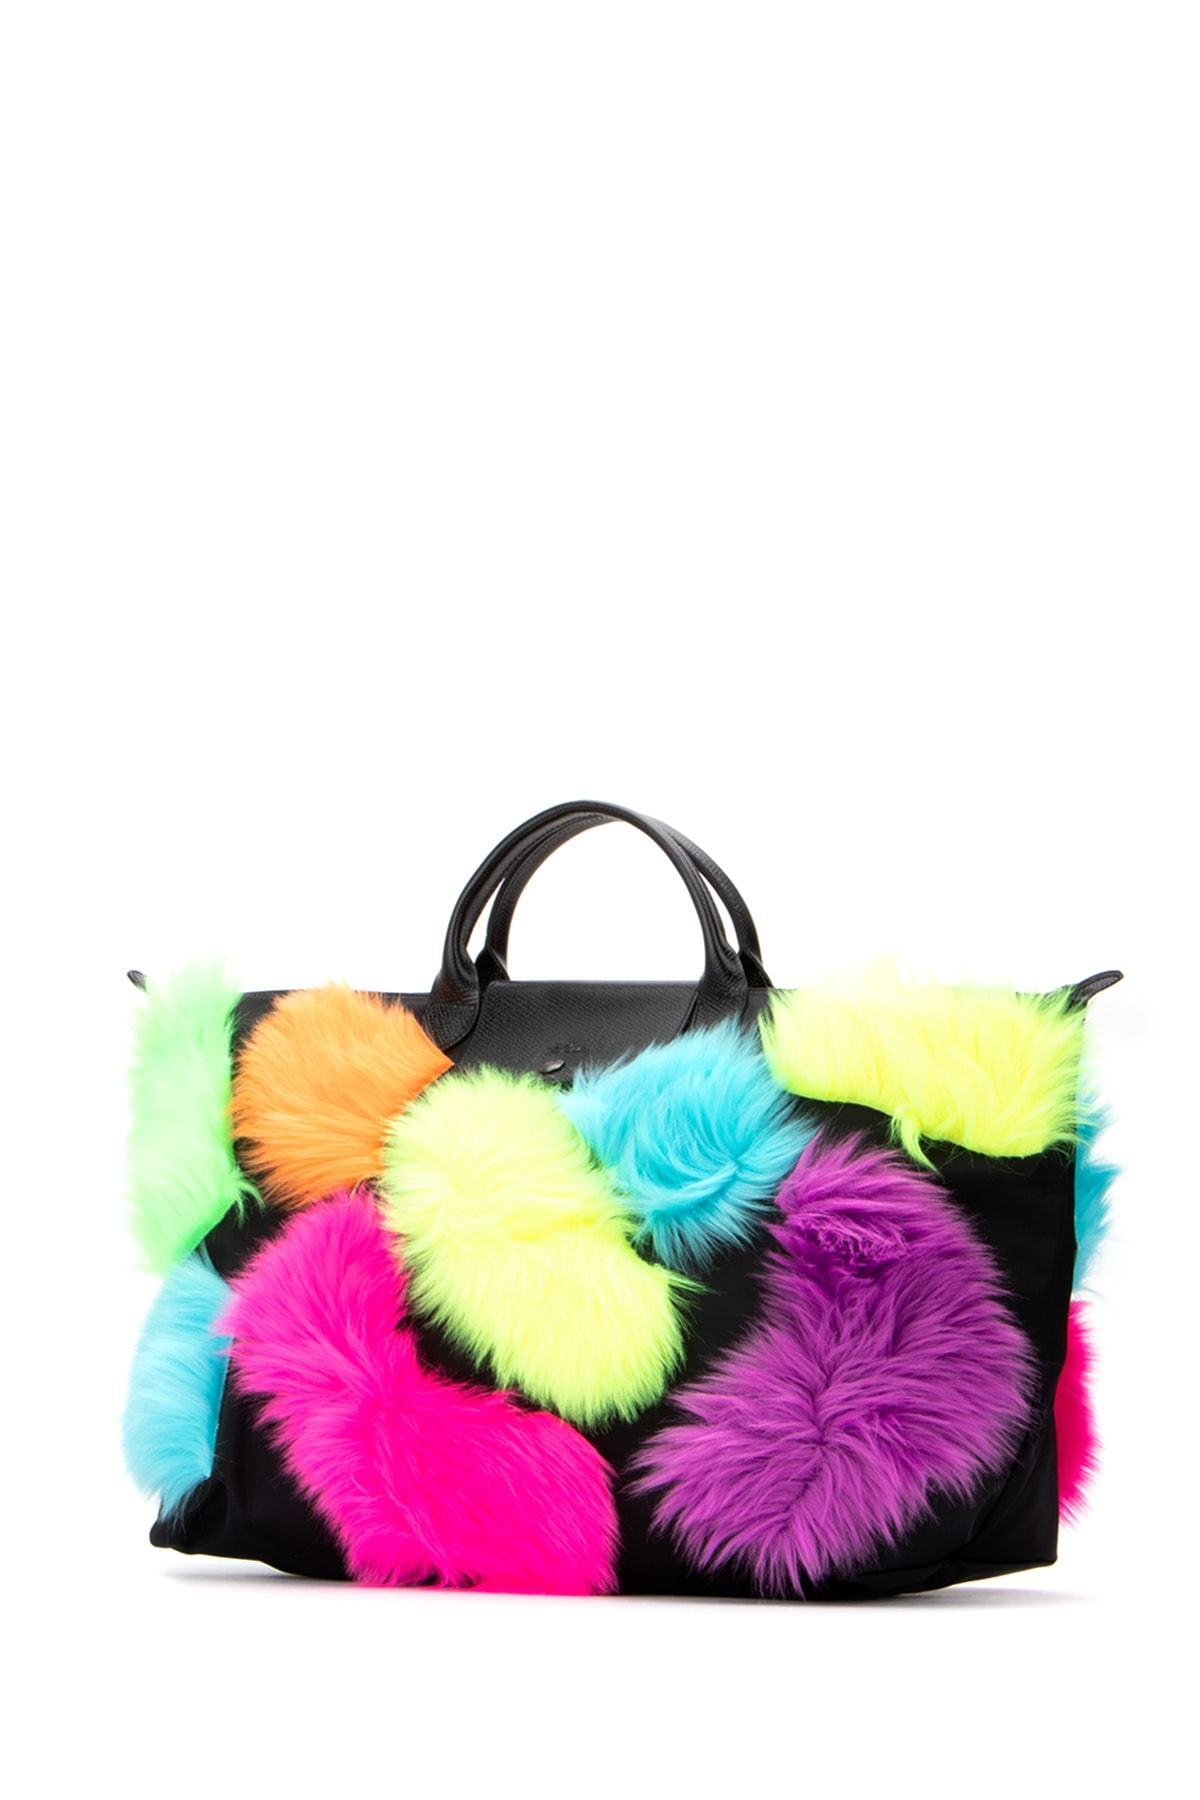 shop jeremy scott bags